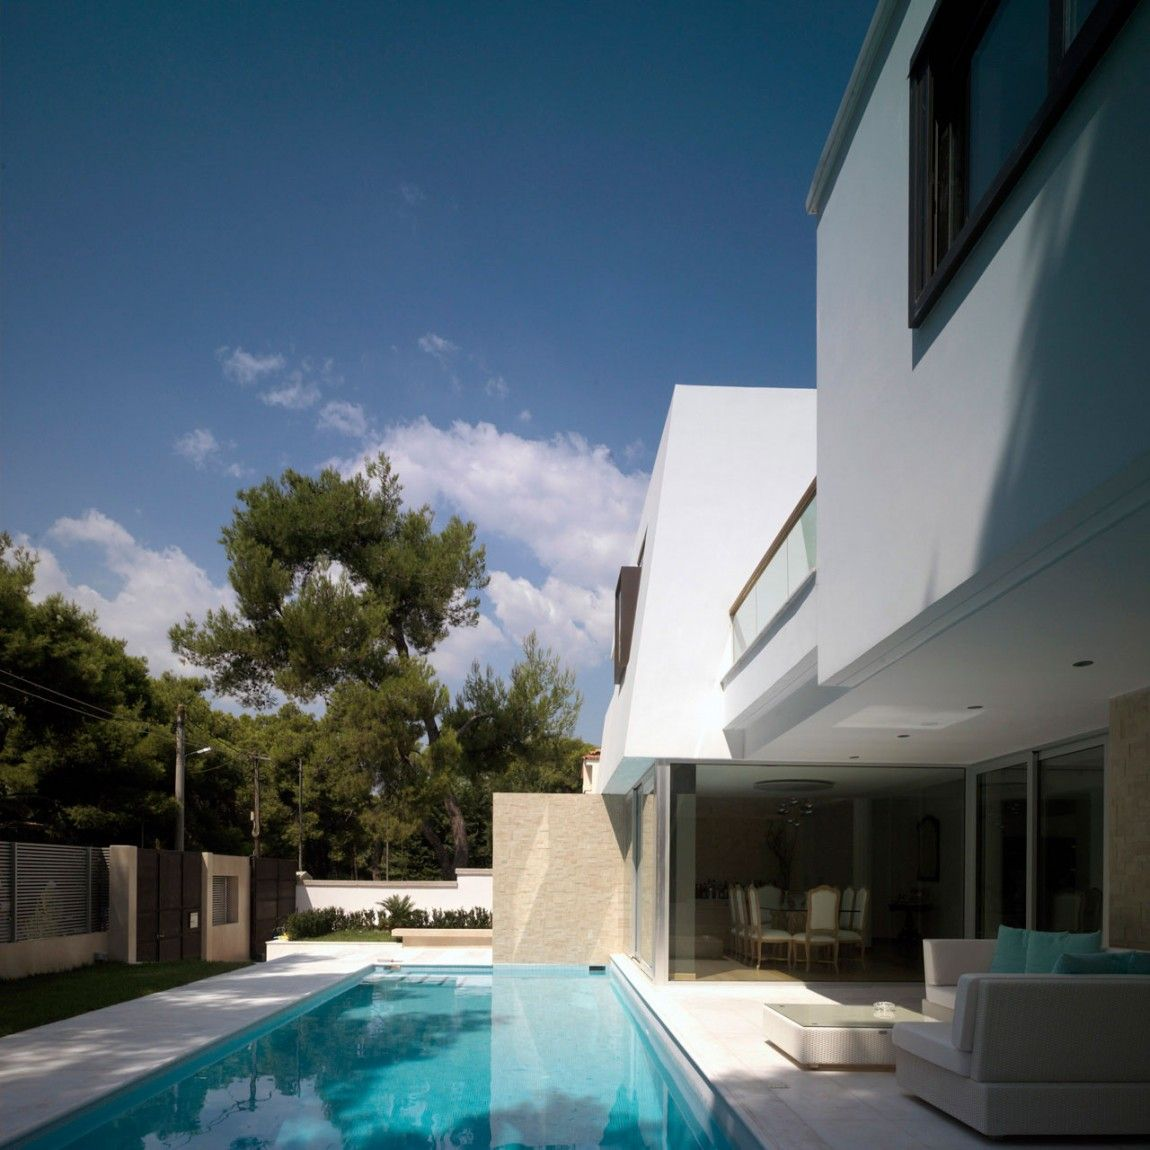 Residential house In Ekali, Greece by Architect Thanos Athanasopoulos